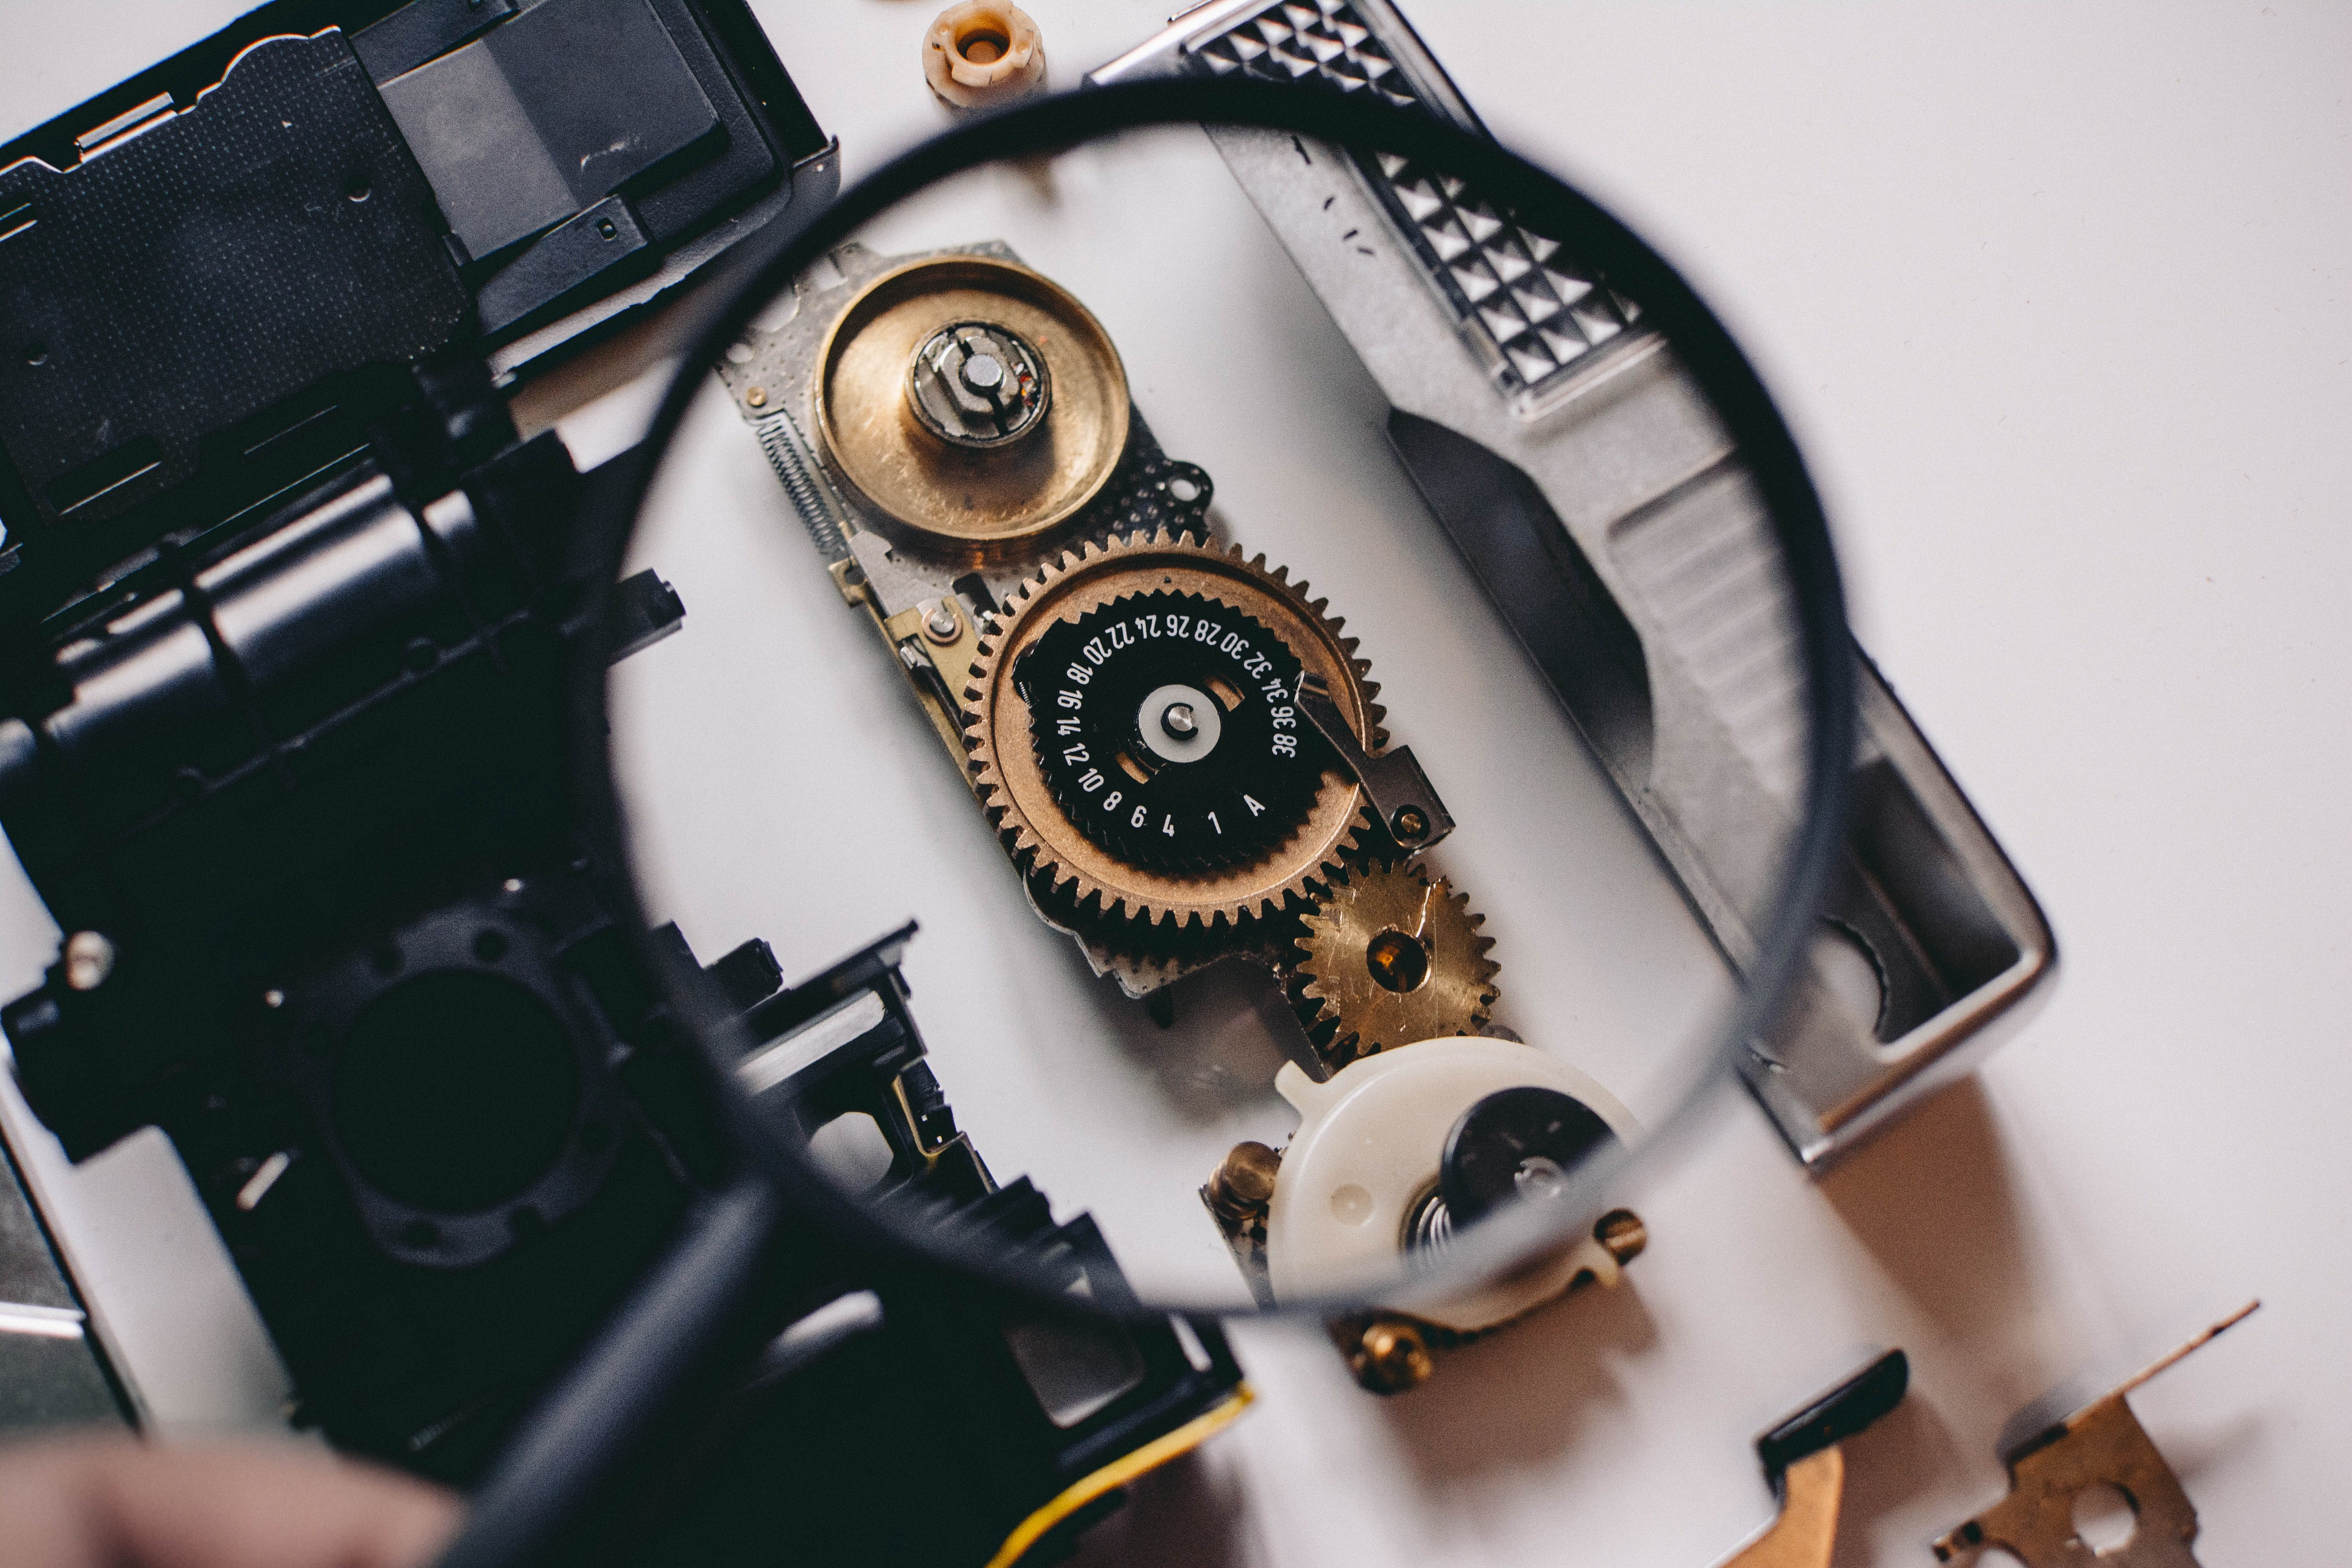 Magnifying glass inspecting mechanical parts